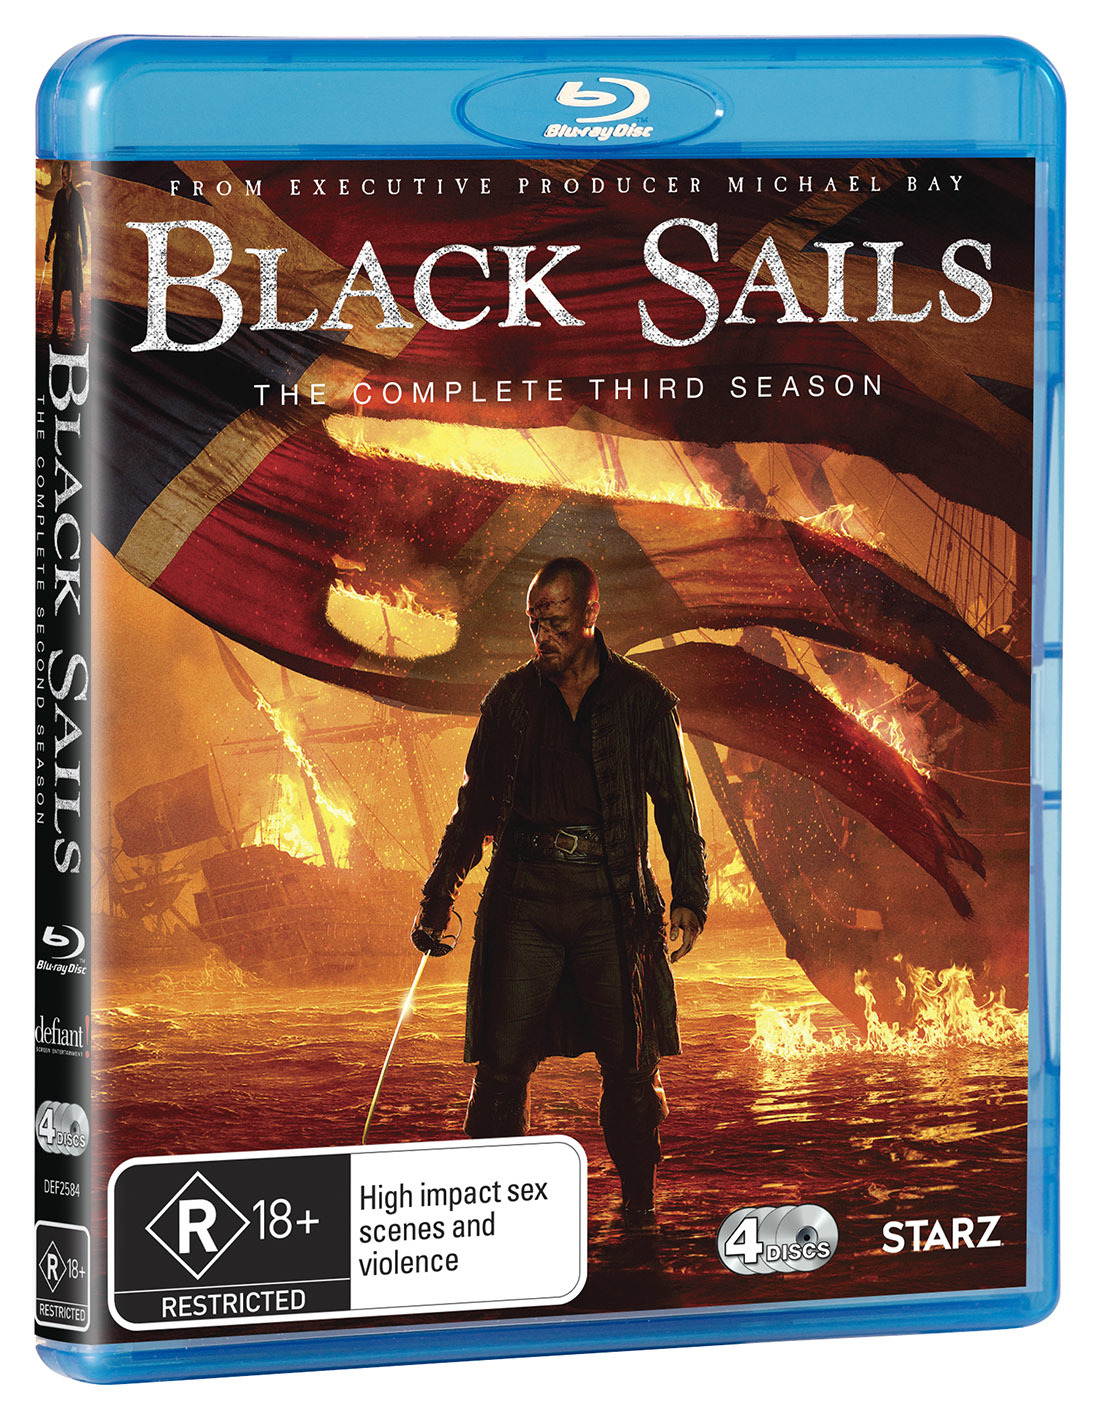 Black Sails - The Complete Third Season on Blu-ray image